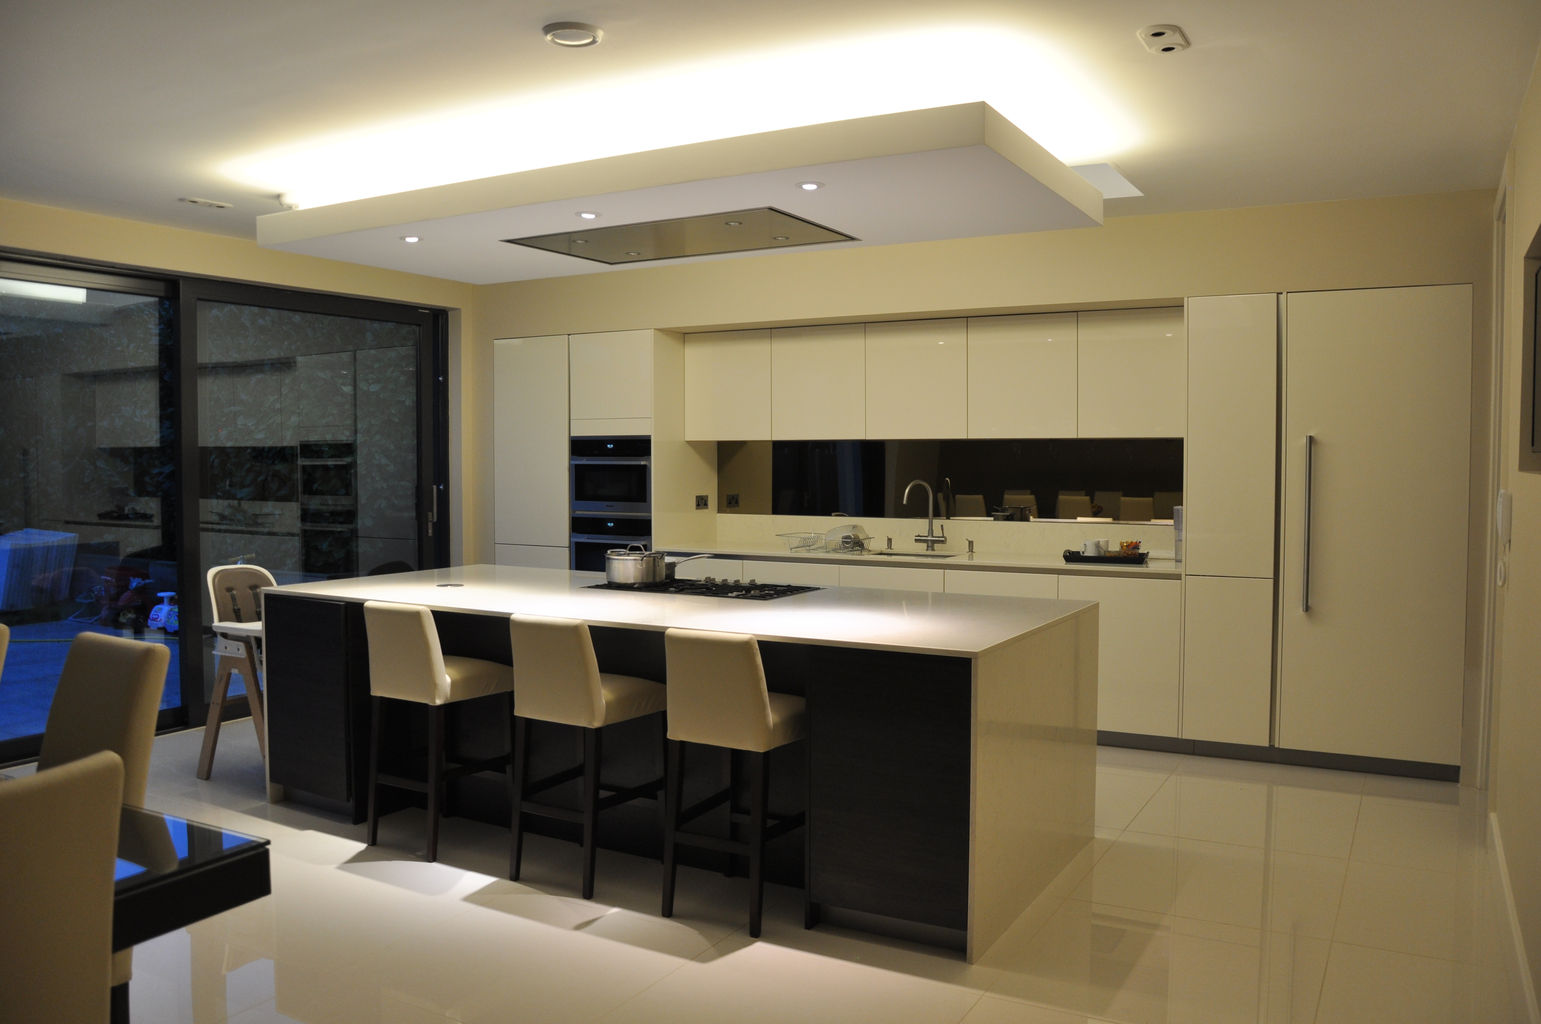 Residential Lighting Consultant lighting design consultants | residential lighting designs